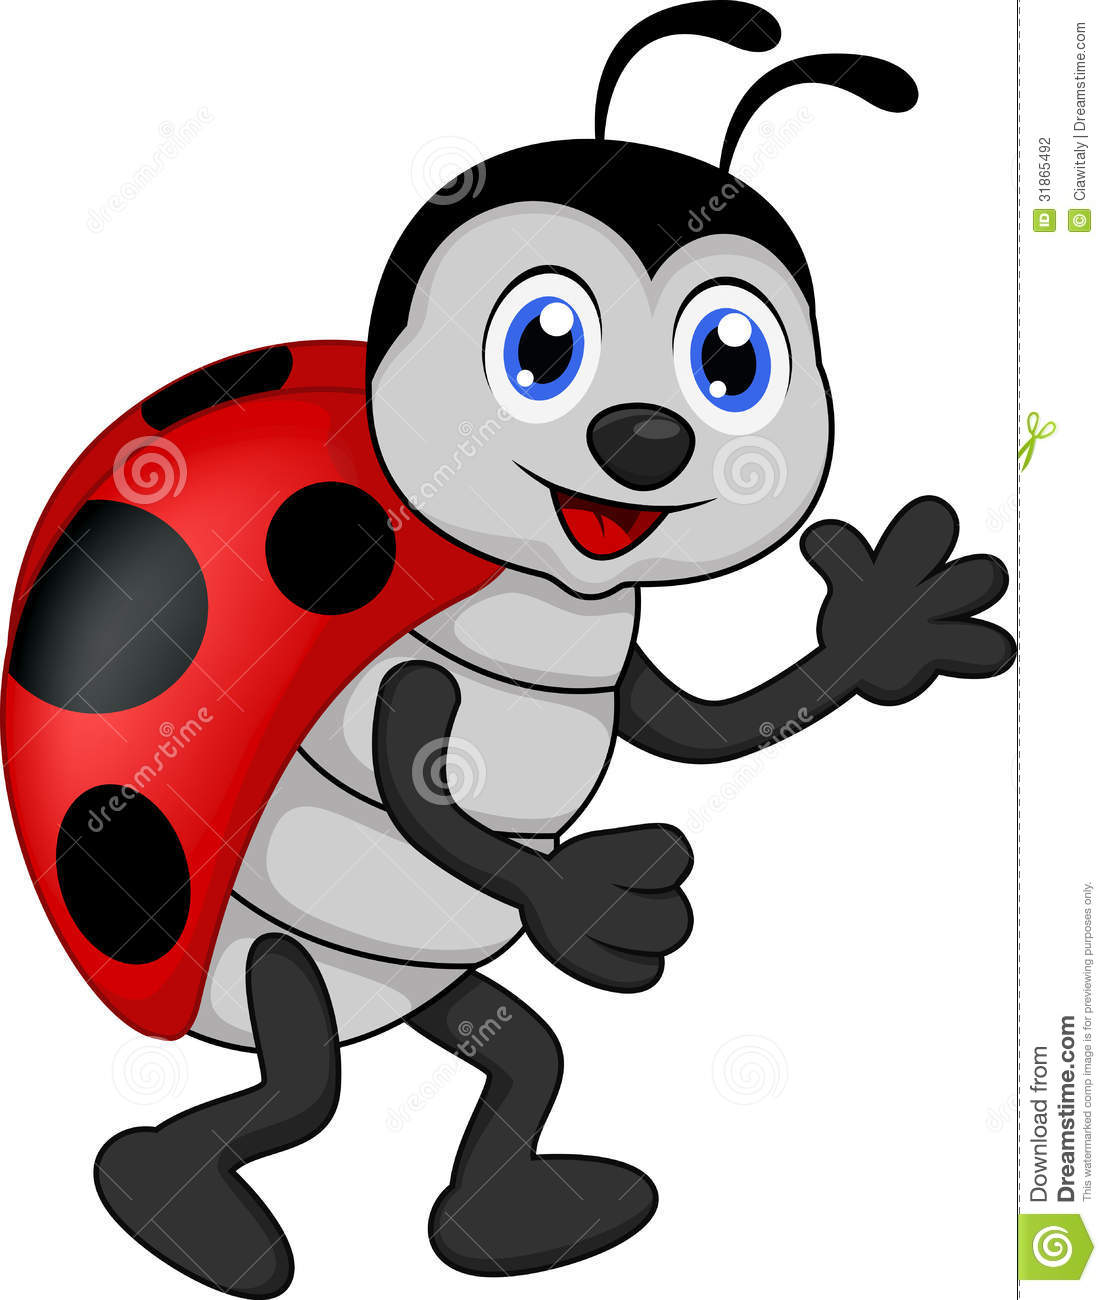 Drawn lady beetle Images Clipart flying%20ladybug%20drawing Clipart Drawings